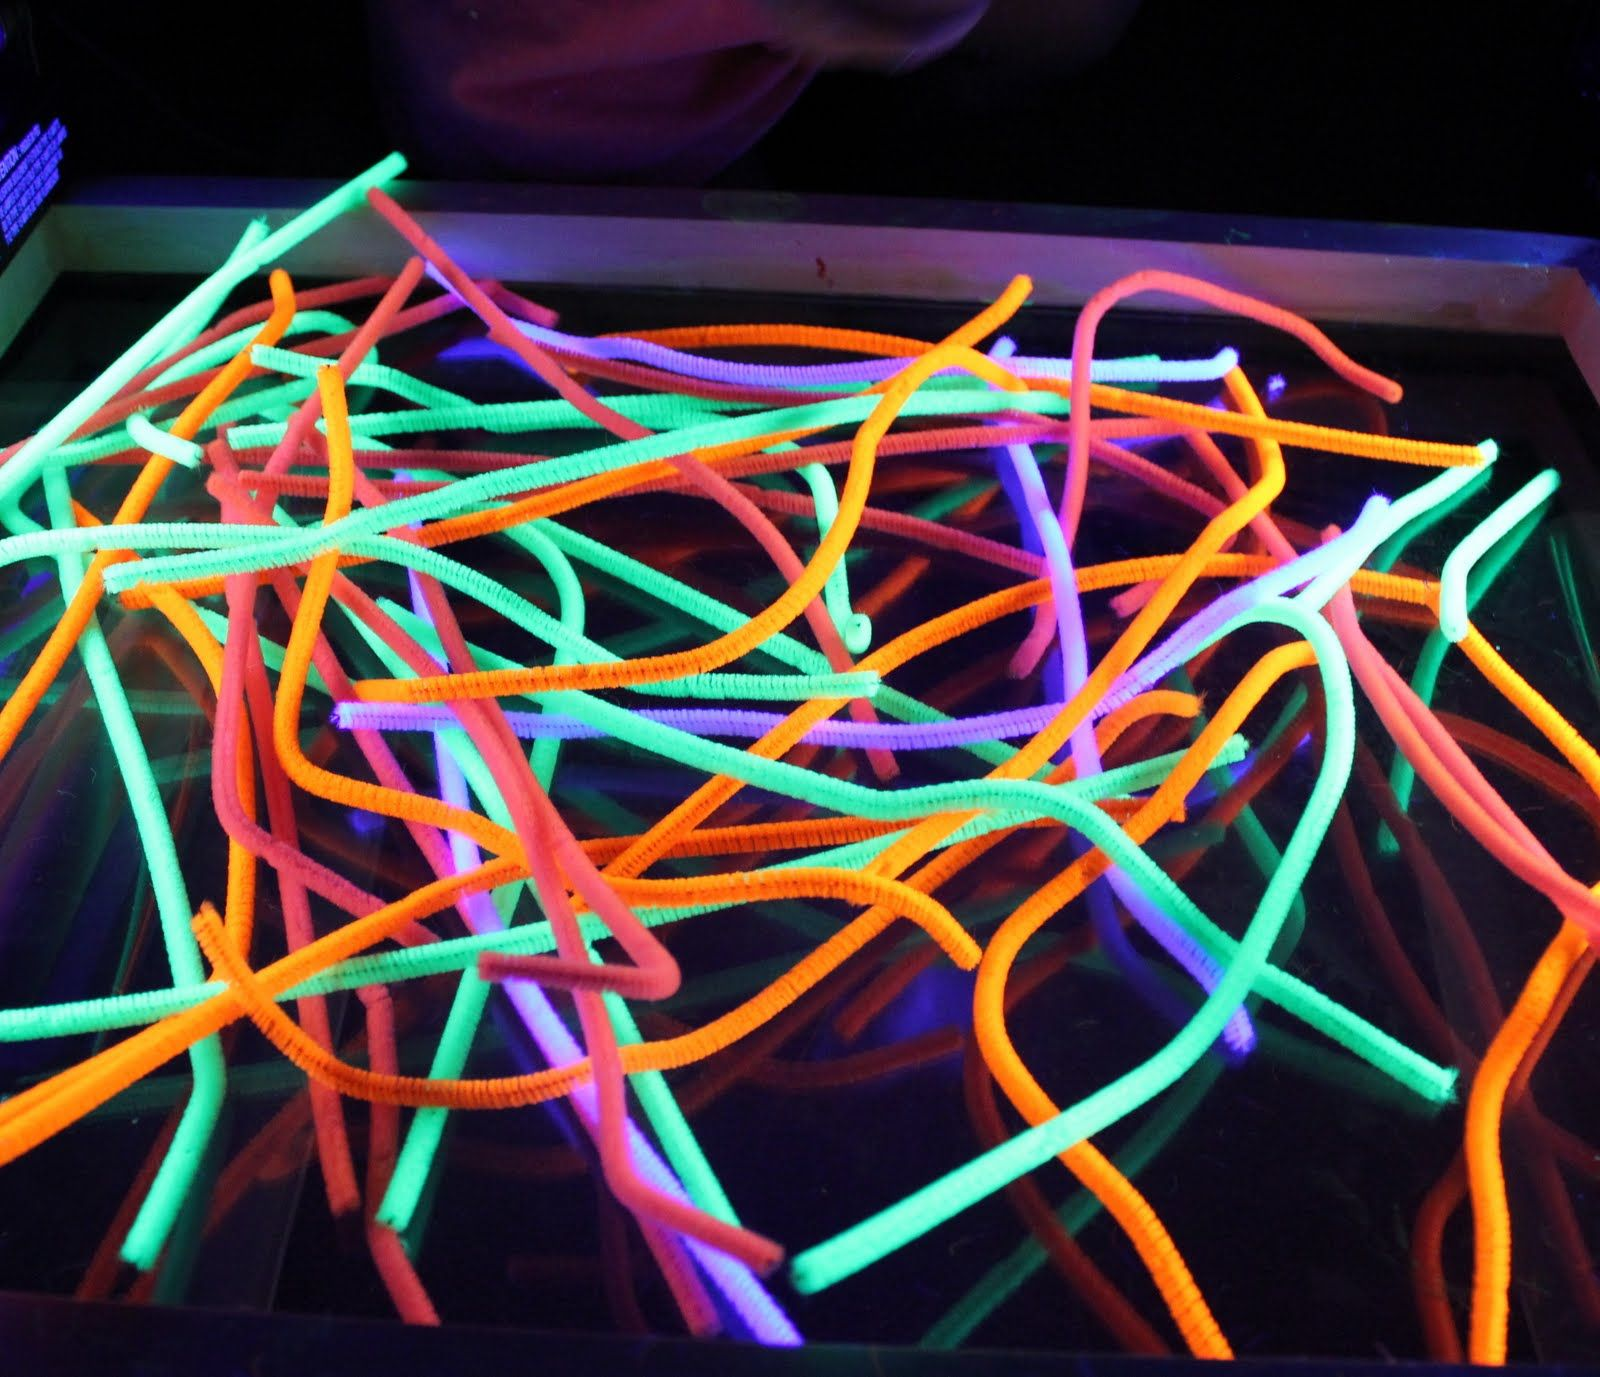 Who Knew Pipe Cleaners Glow In The Dark Under A Black Light?